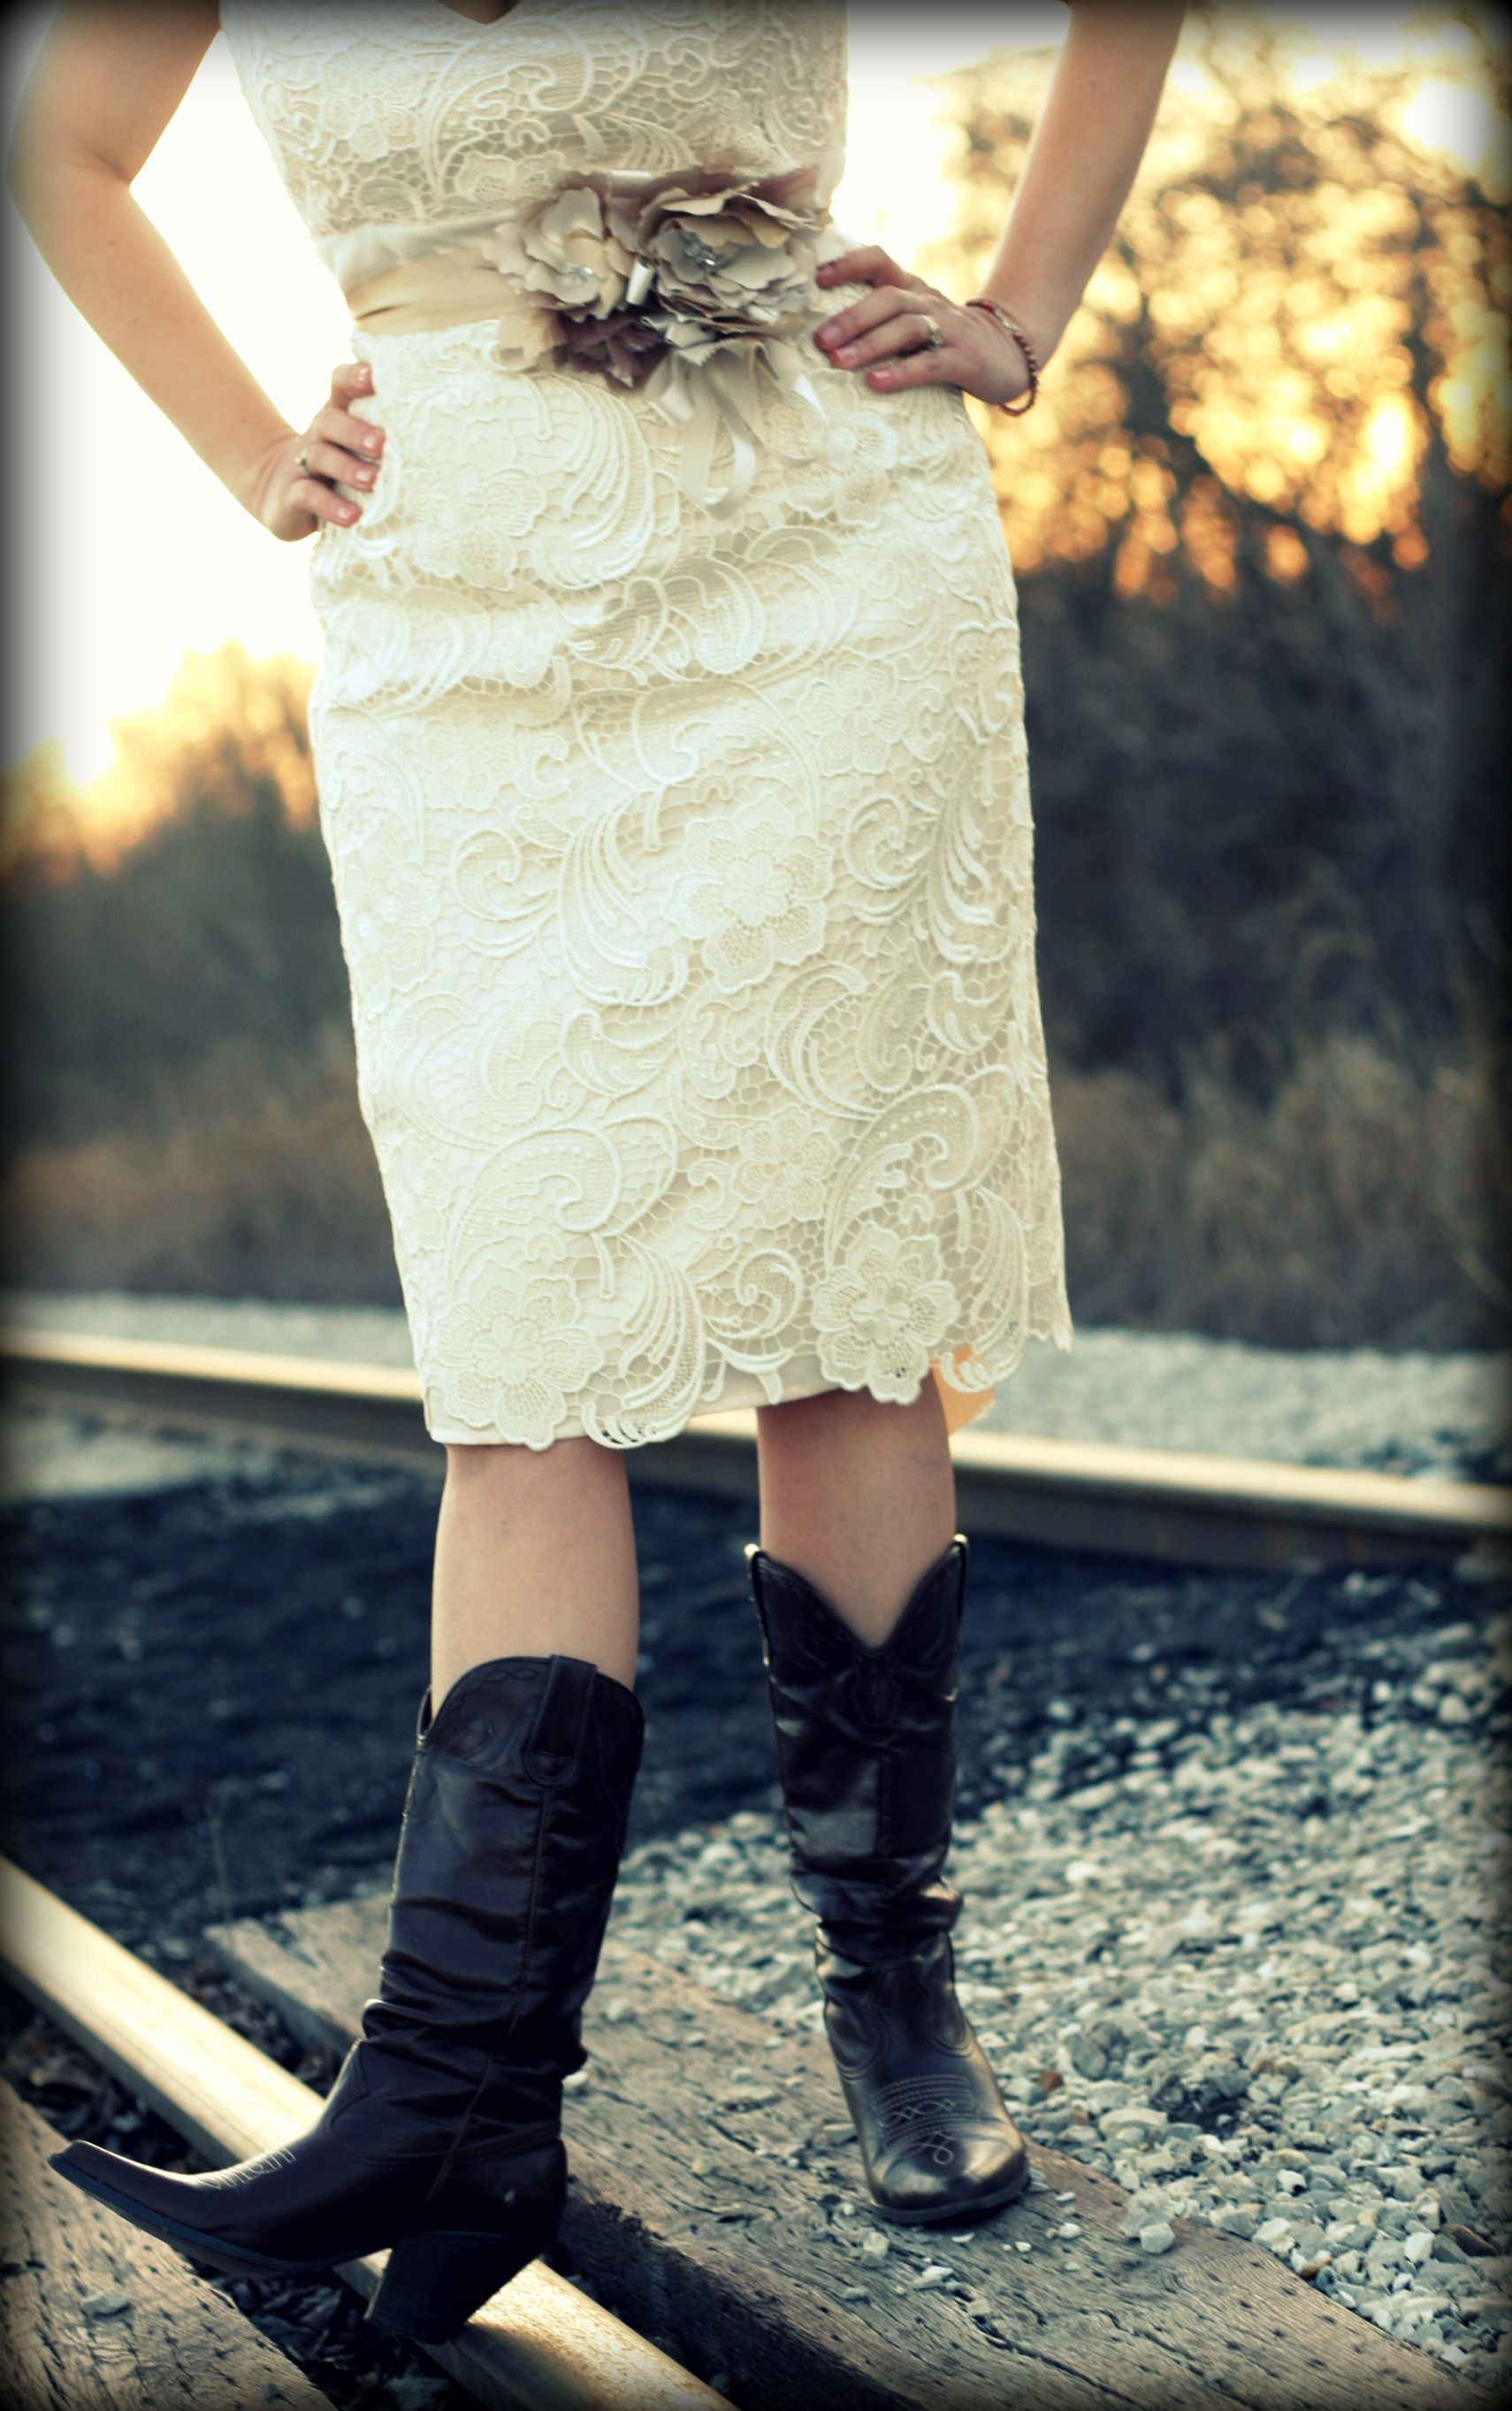 Lace wedding dress with cowboy boots trendy wedding